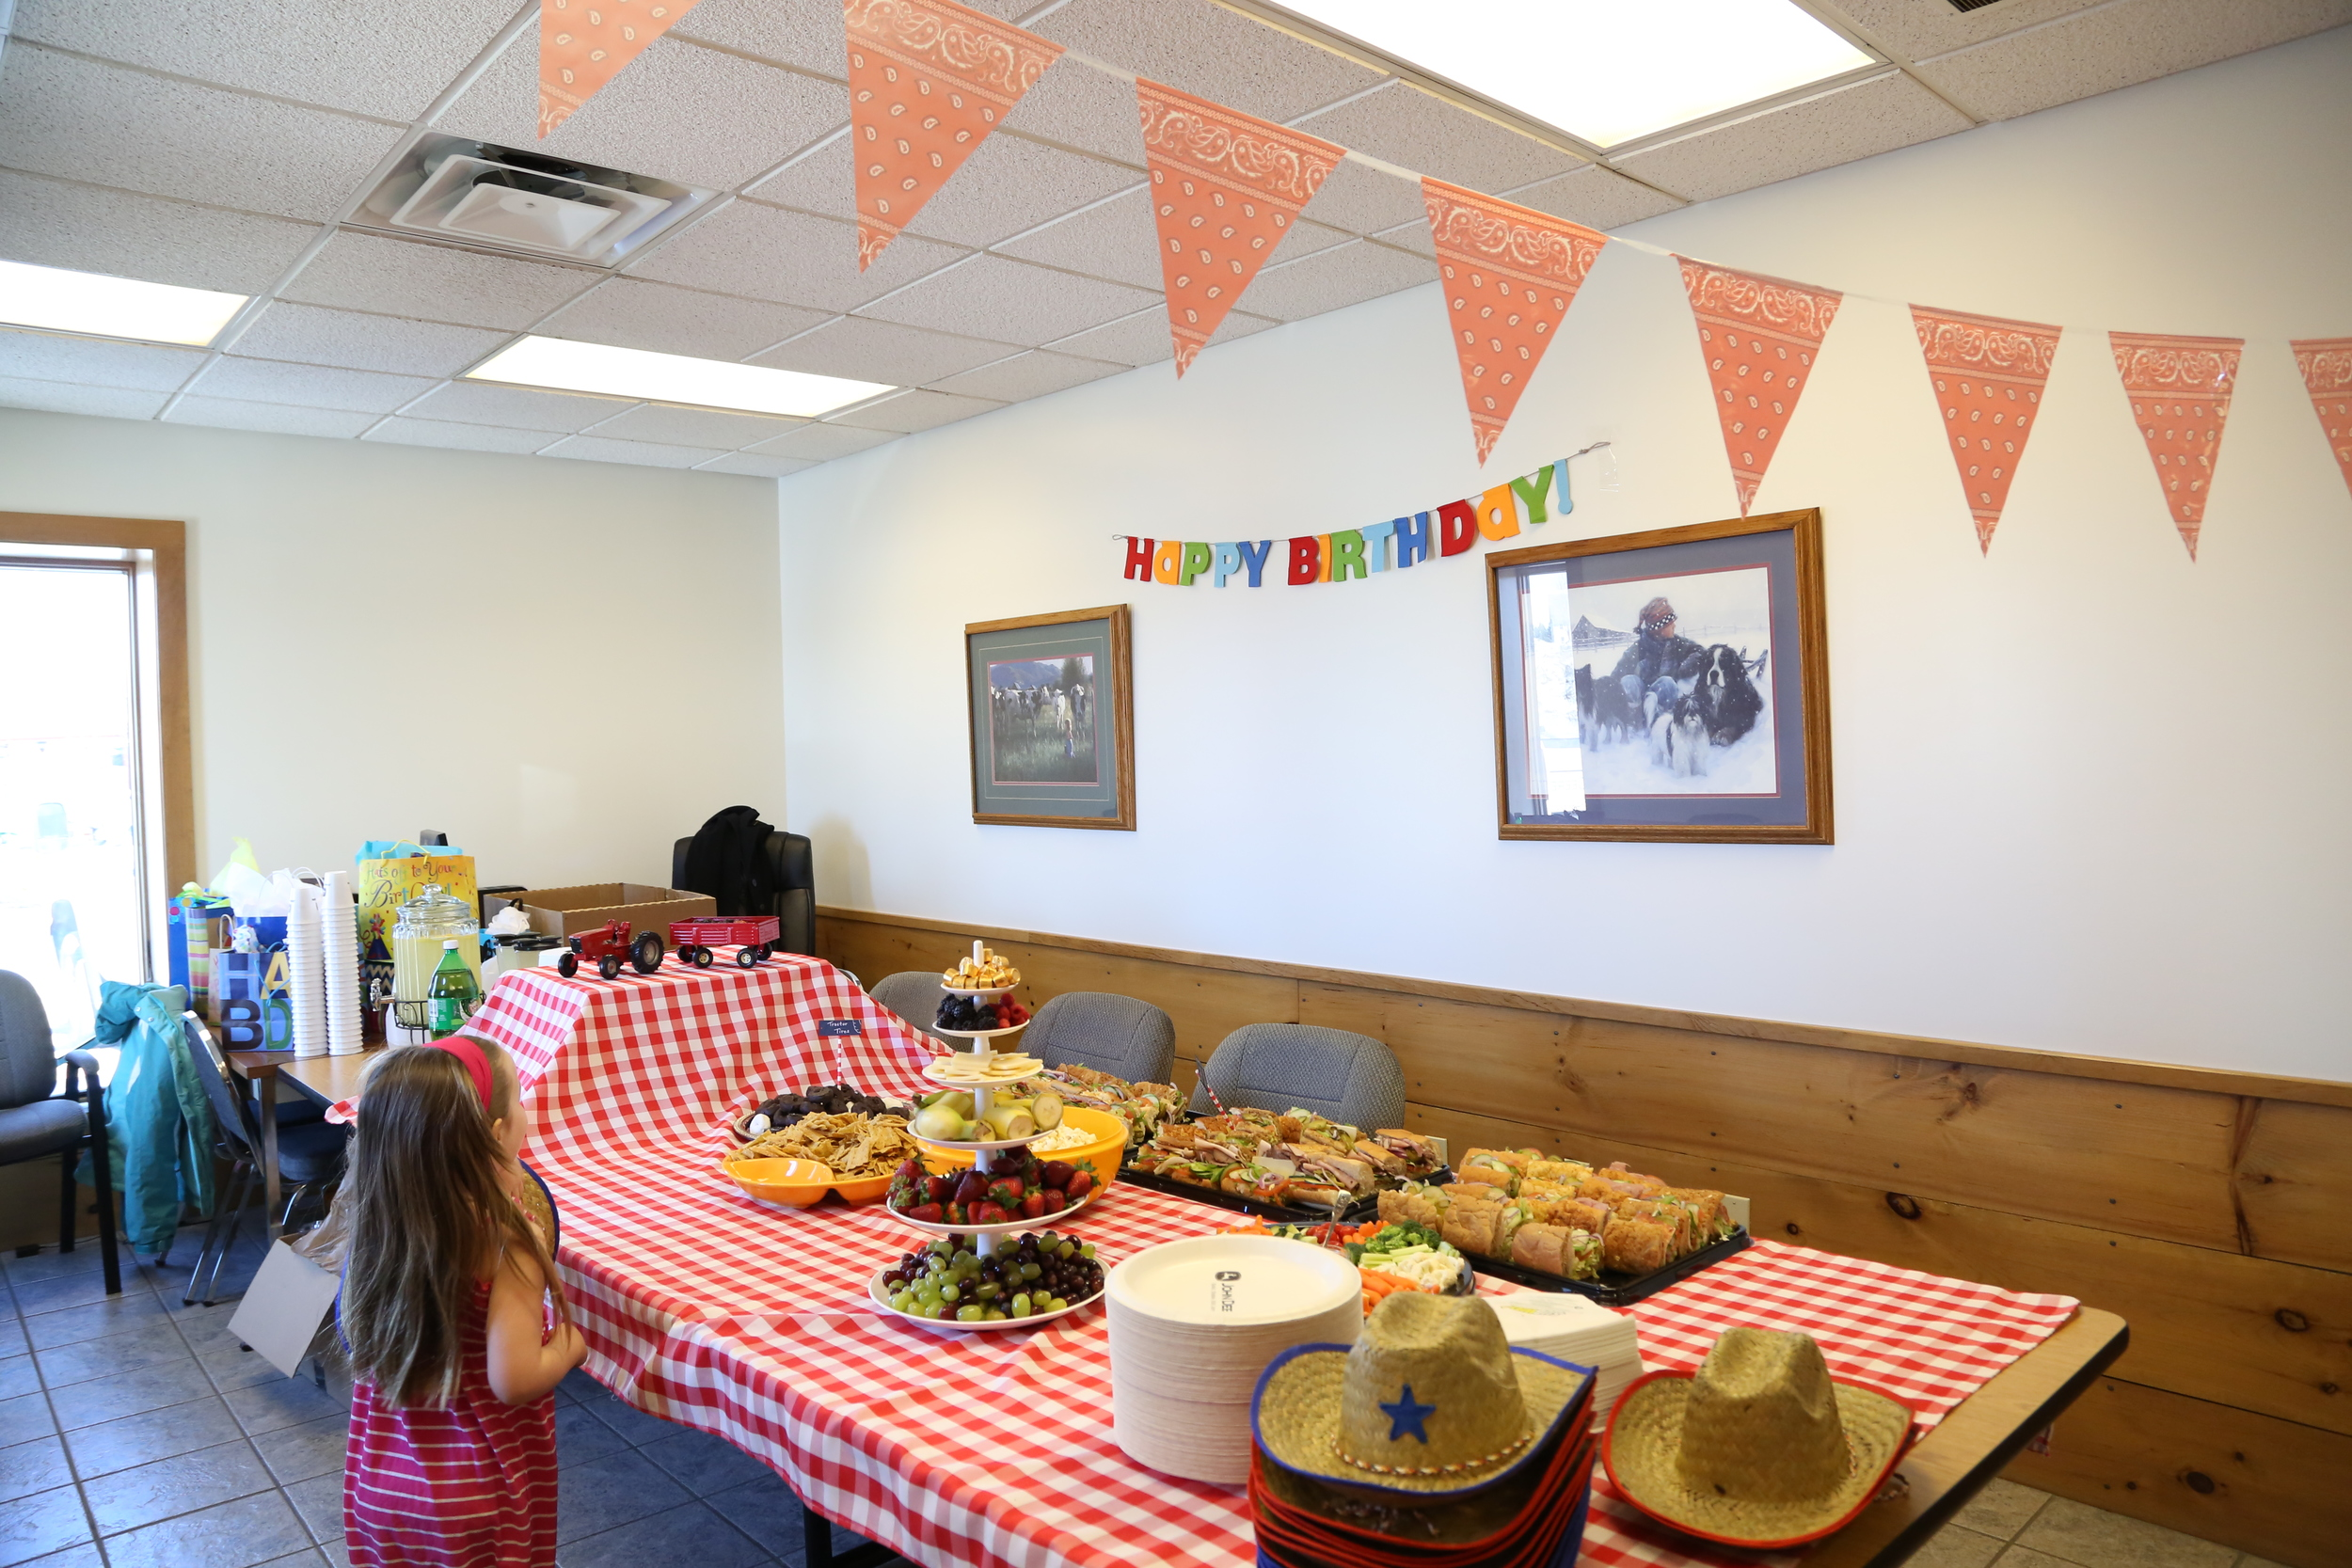 """The spread - Subway catering, lemonade, fruit/cheese/chocolate platter, """"tractor tire"""" donuts, veggie tray & dip I cut up myself because the grocery store wanted $44 for one veggie tray, with adult-sized bites  (seriously?!) So I chopped the veggies into toddler-size pieces myself."""